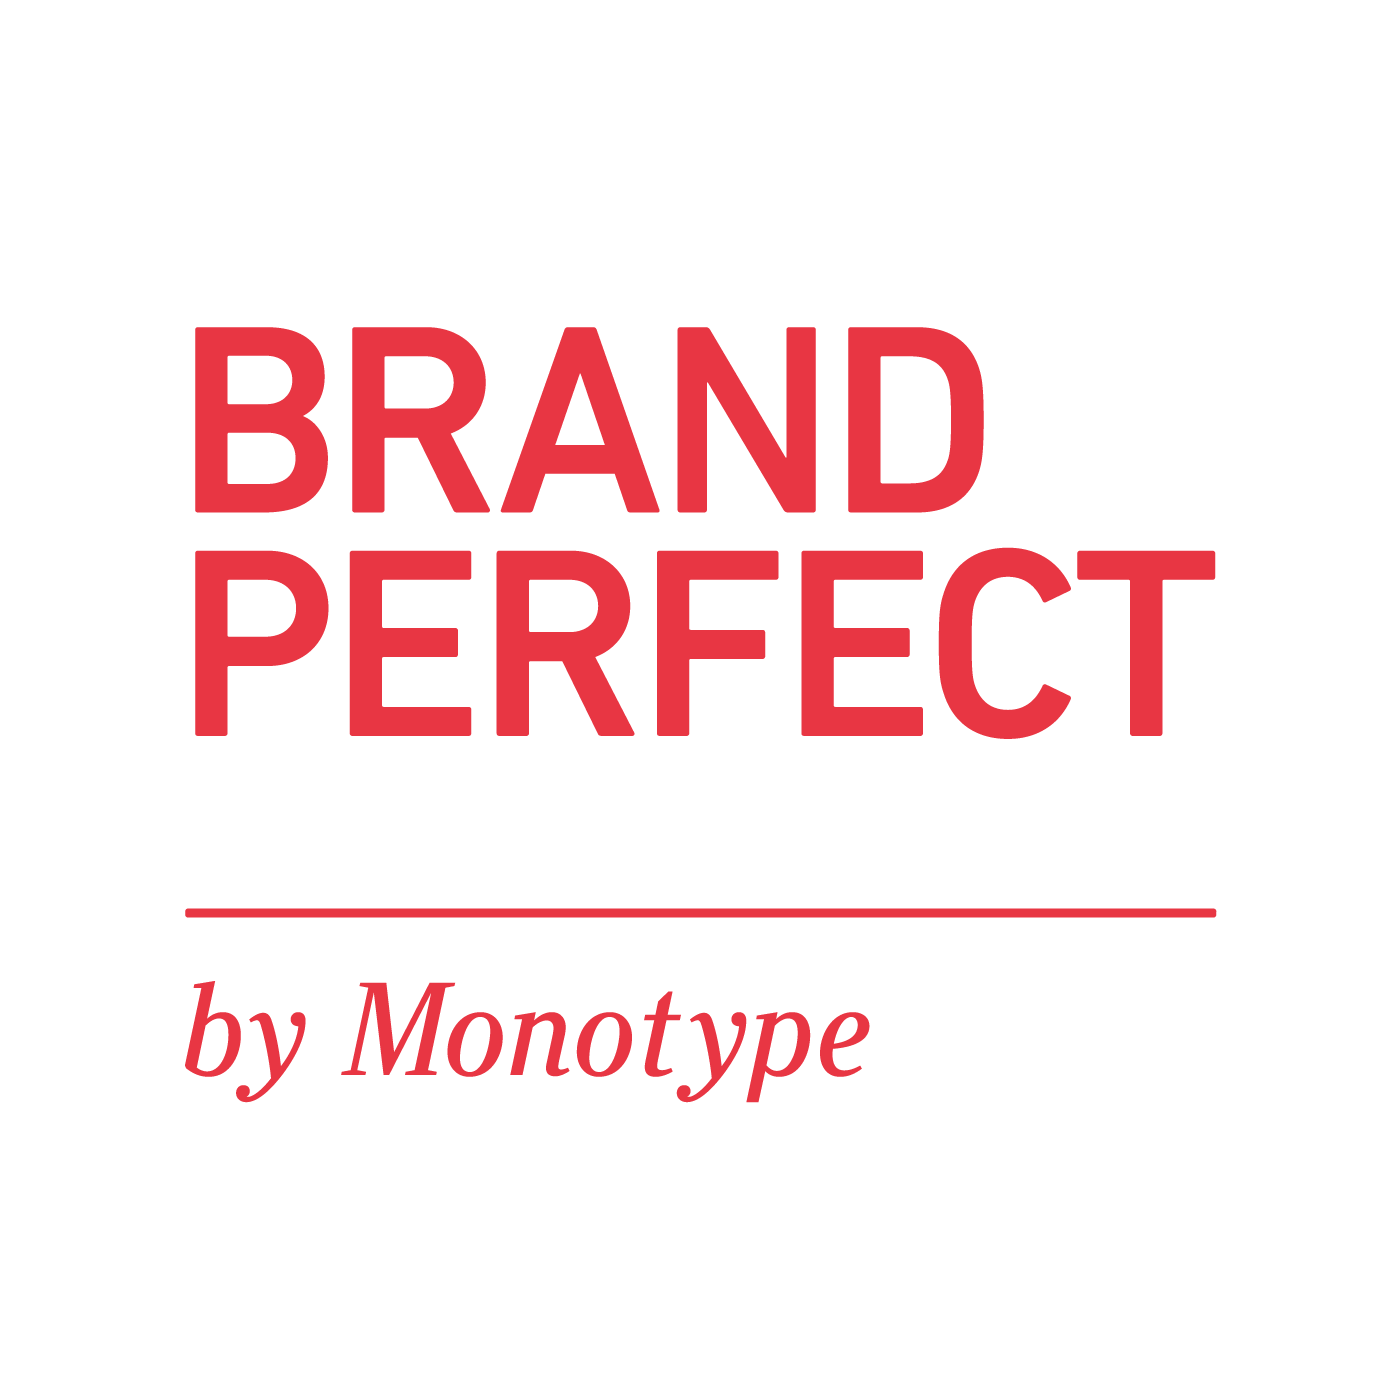 Brand Perfect